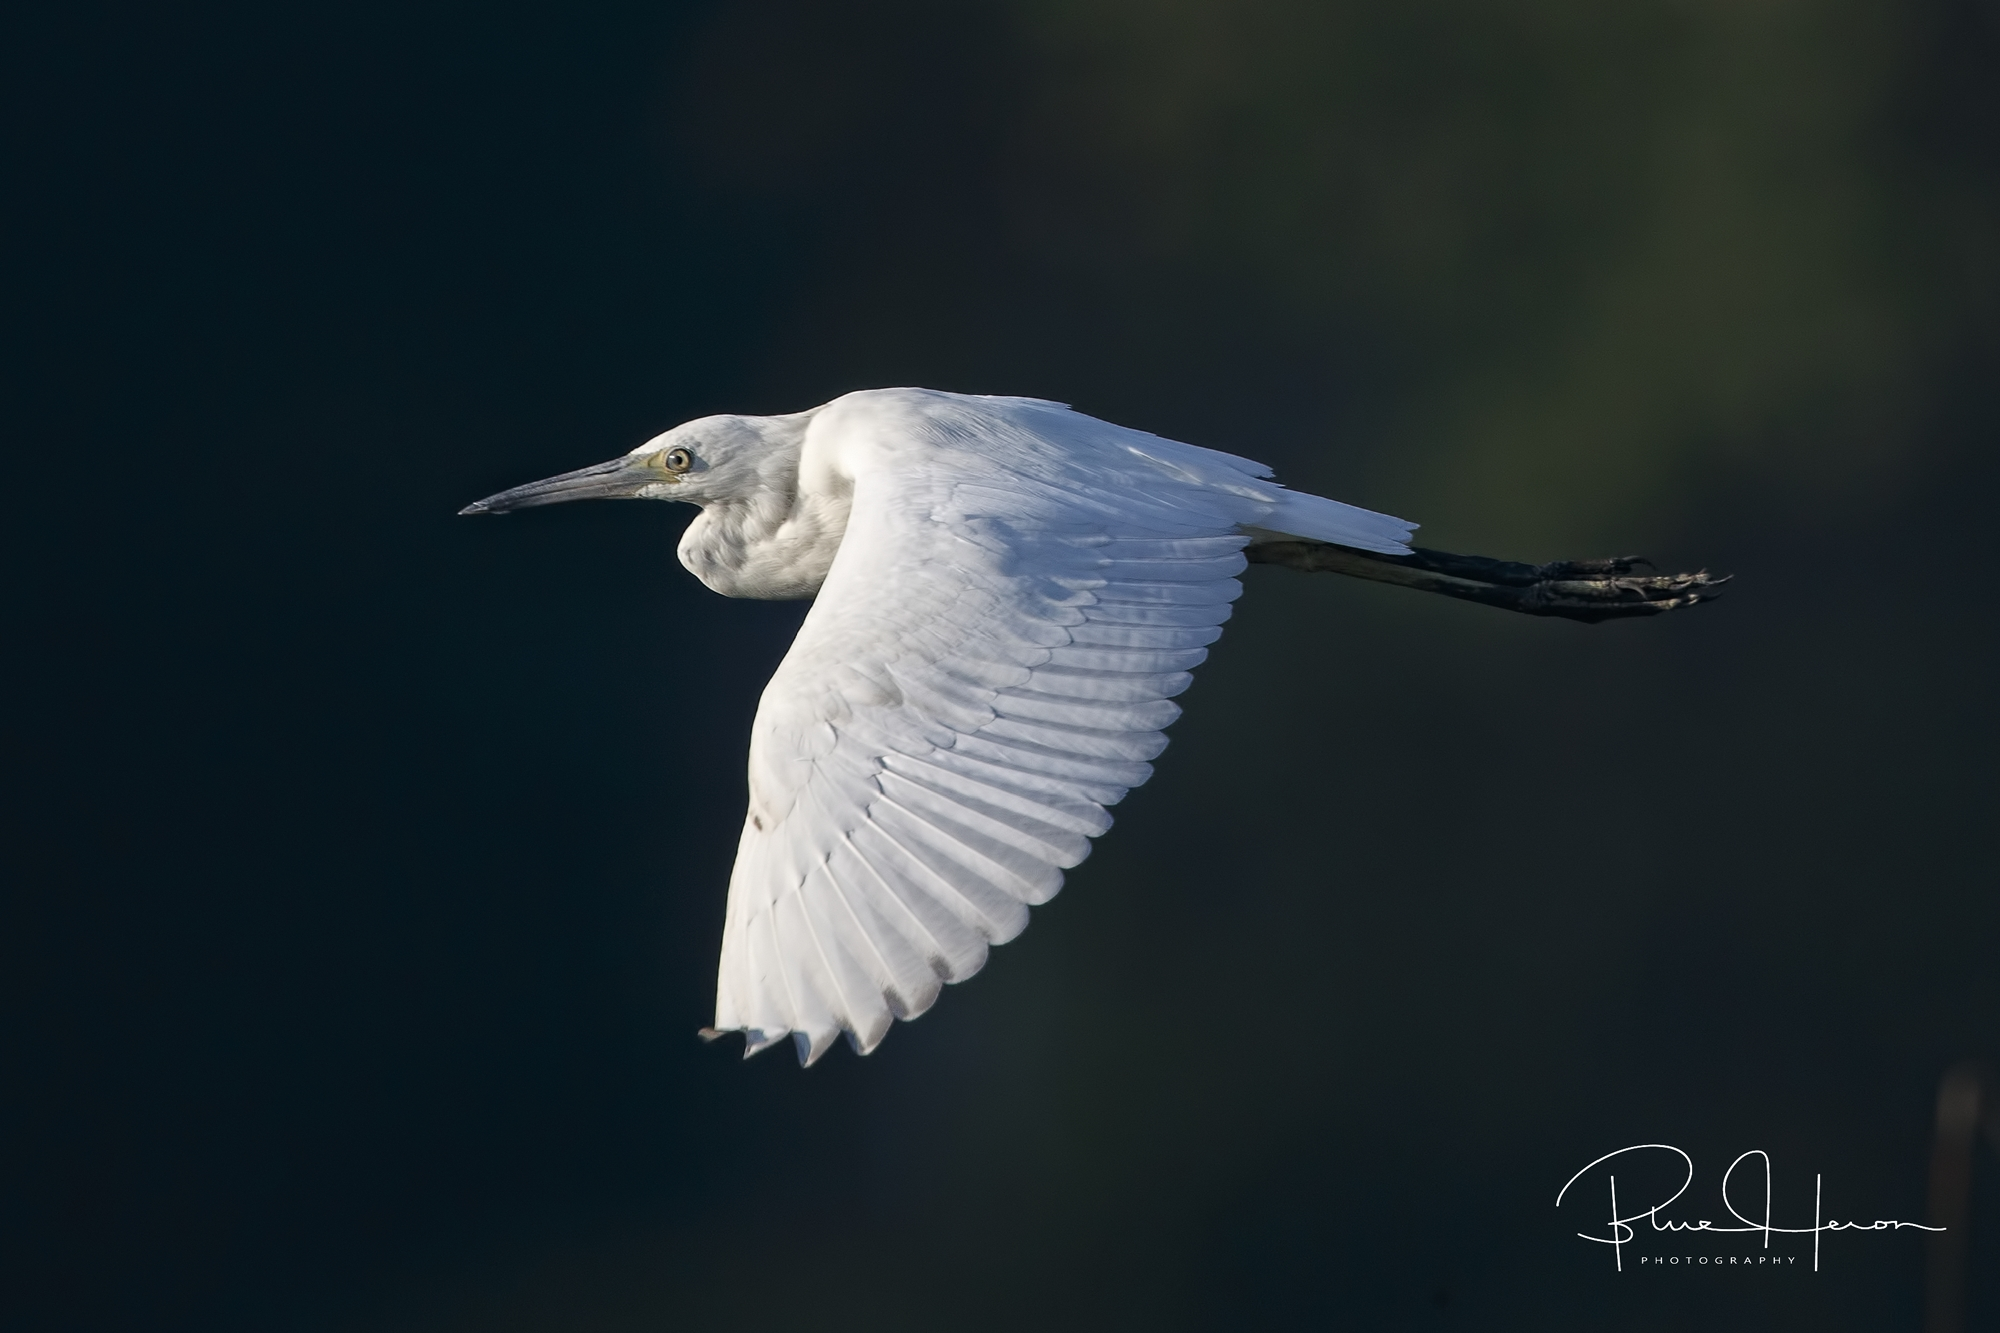 Juvenile Little Blue Heron…they turn blue as they mature, white feathers as juveniles.